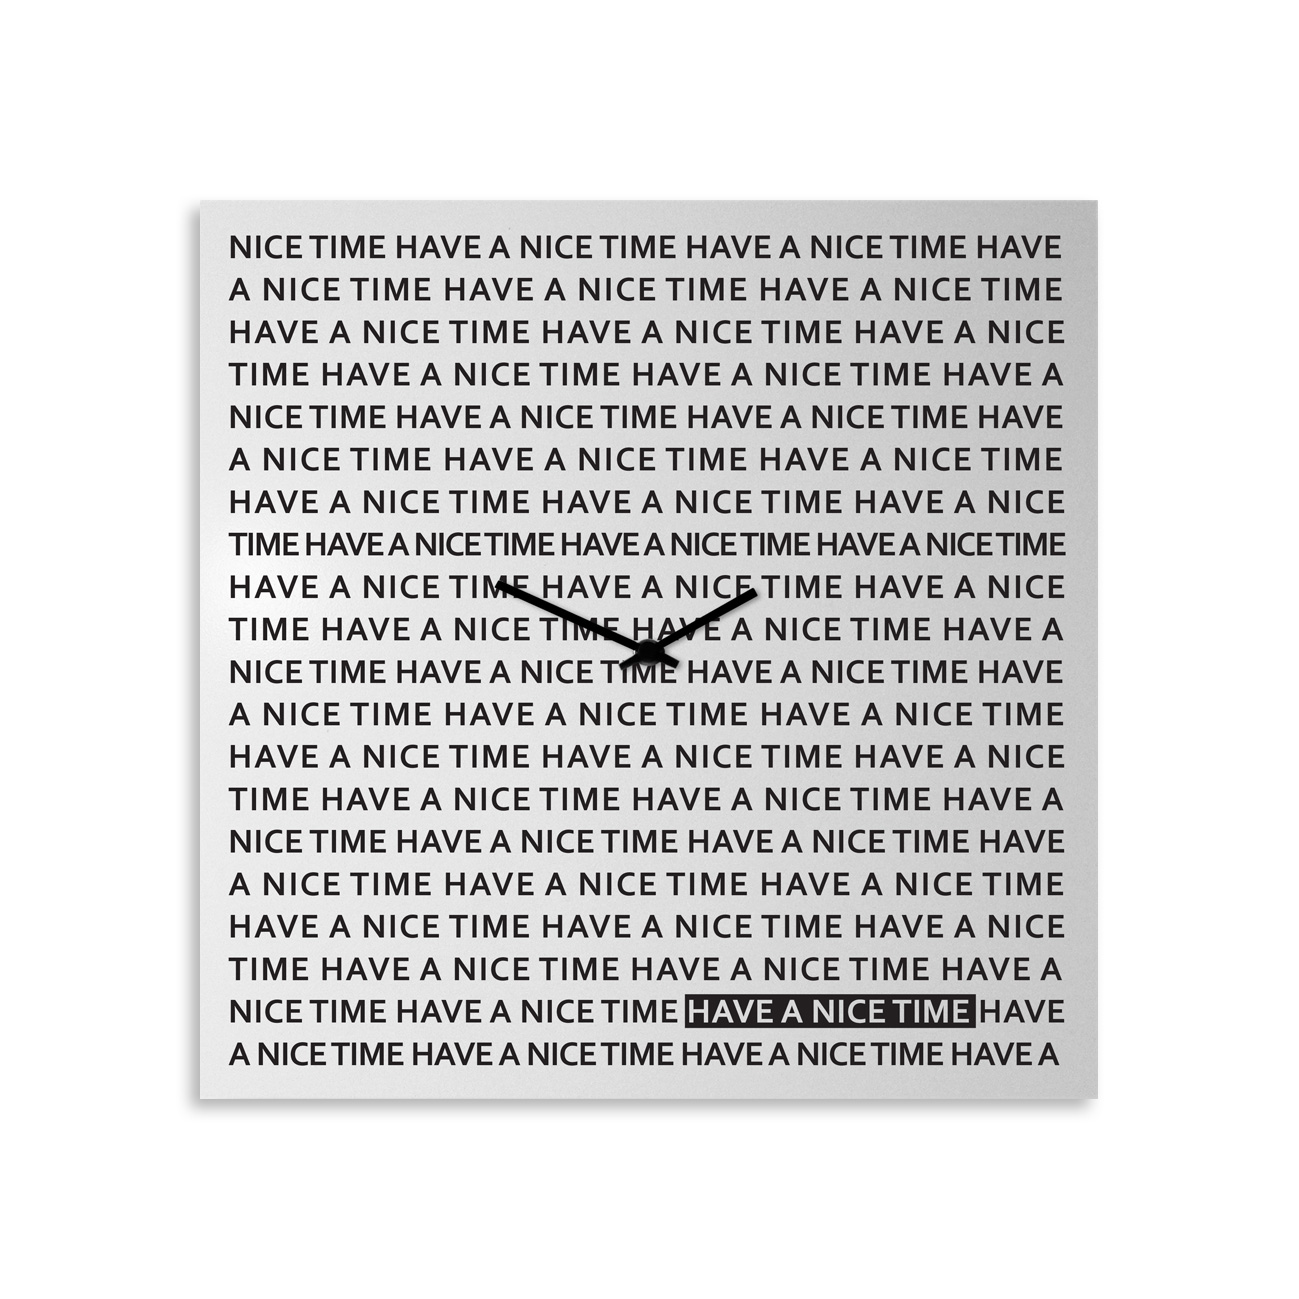 Nice time: modern, big wall clock. Italian Design